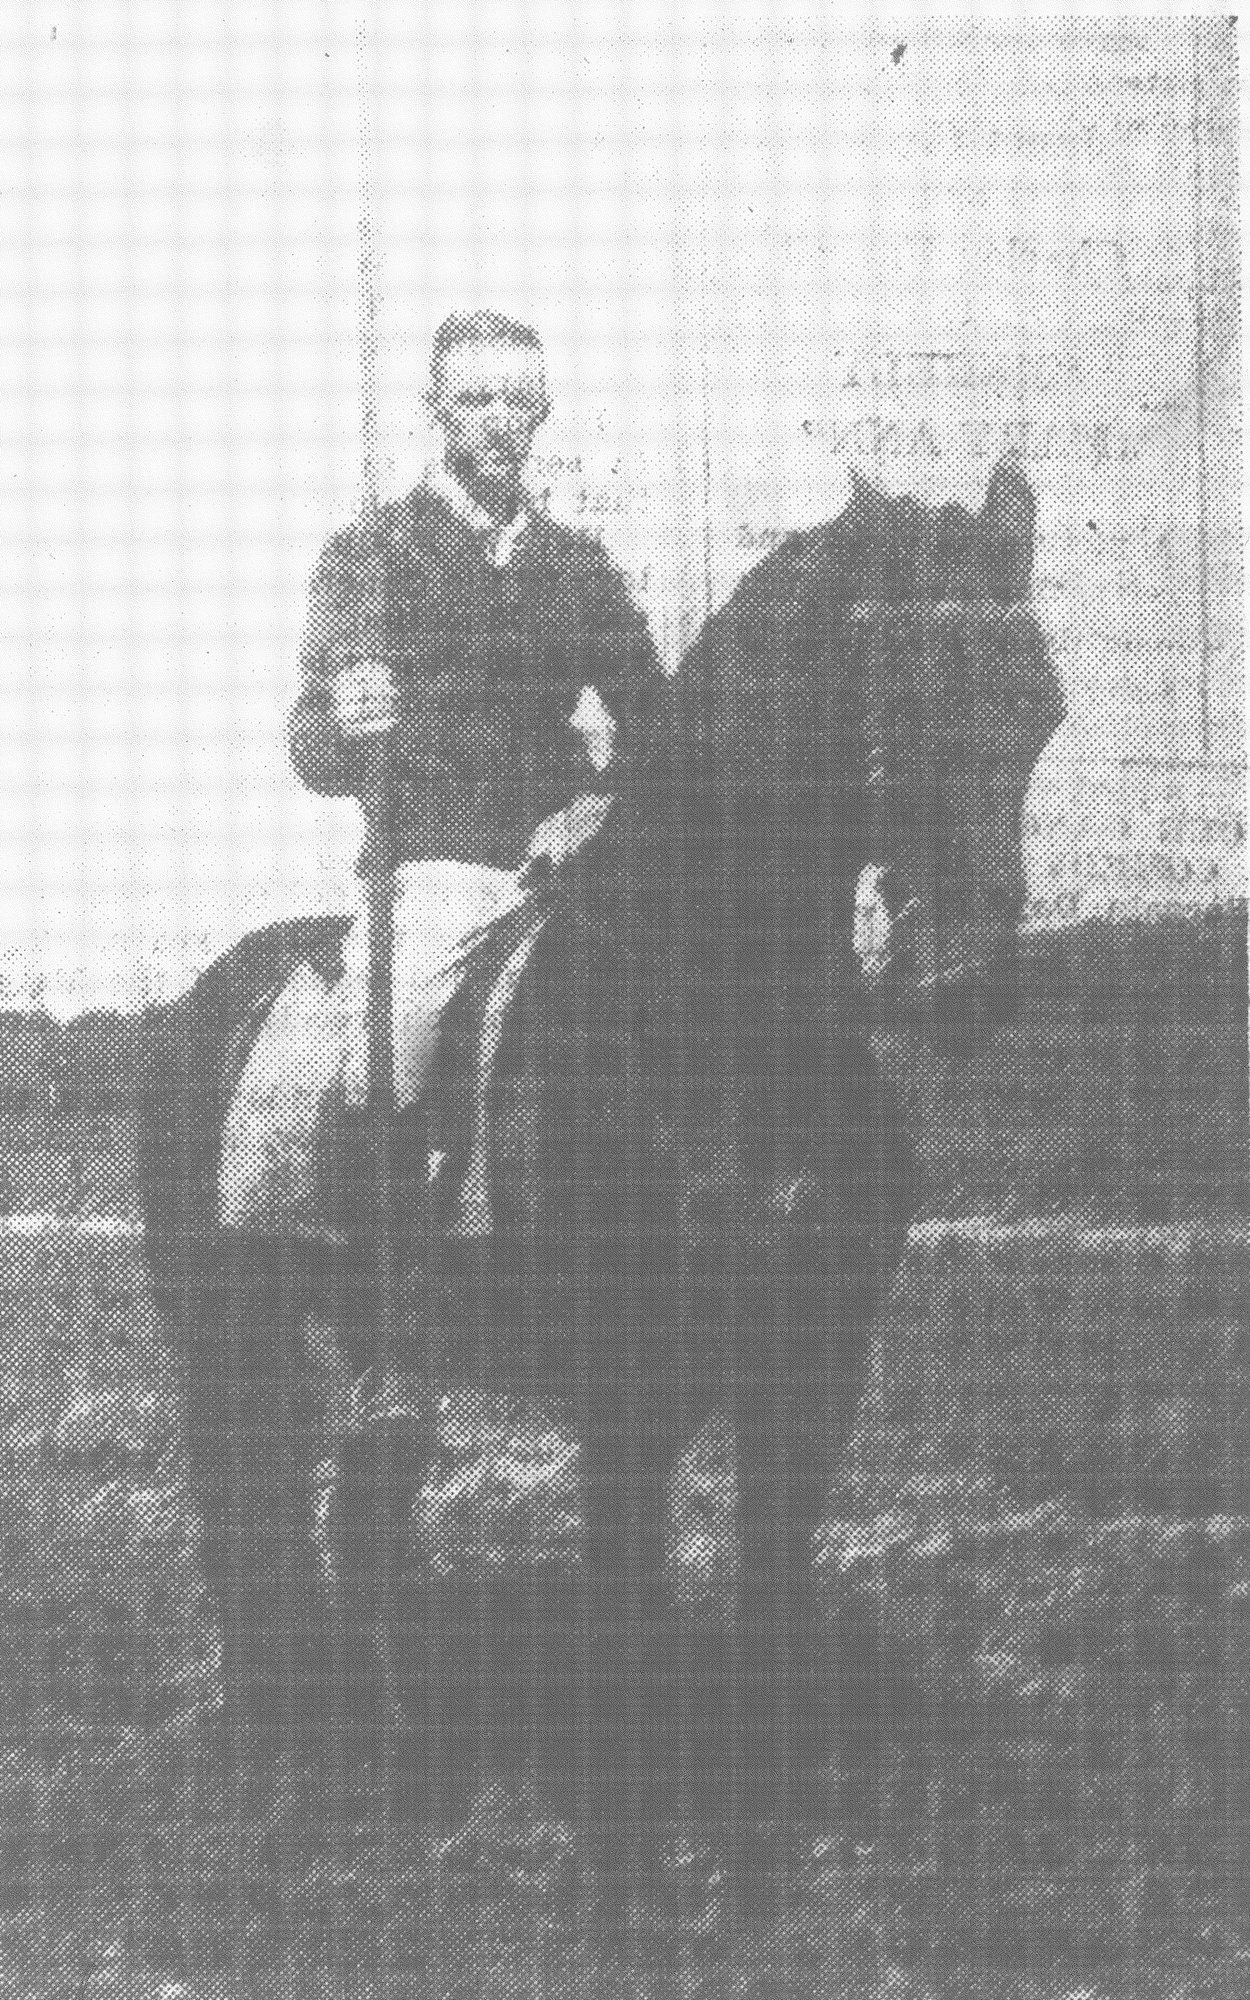 S. A. Harvin planned to ride his horse Ginger in a tilting tournament at Sumter County Fair in 1931.